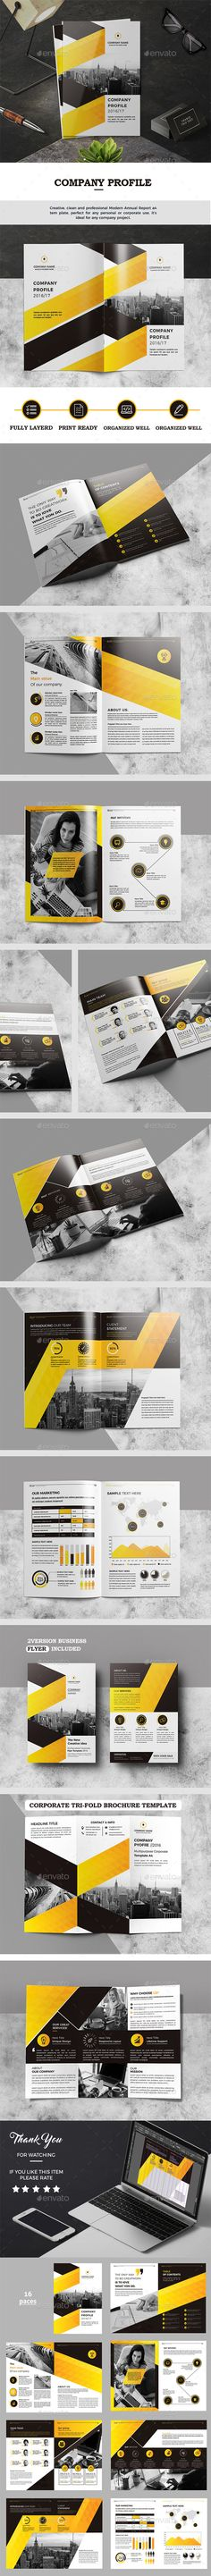 Company Profile — InDesign INDD #light #business • Download ➝ https://graphicriver.net/item/company-profile/19188377?ref=pxcr